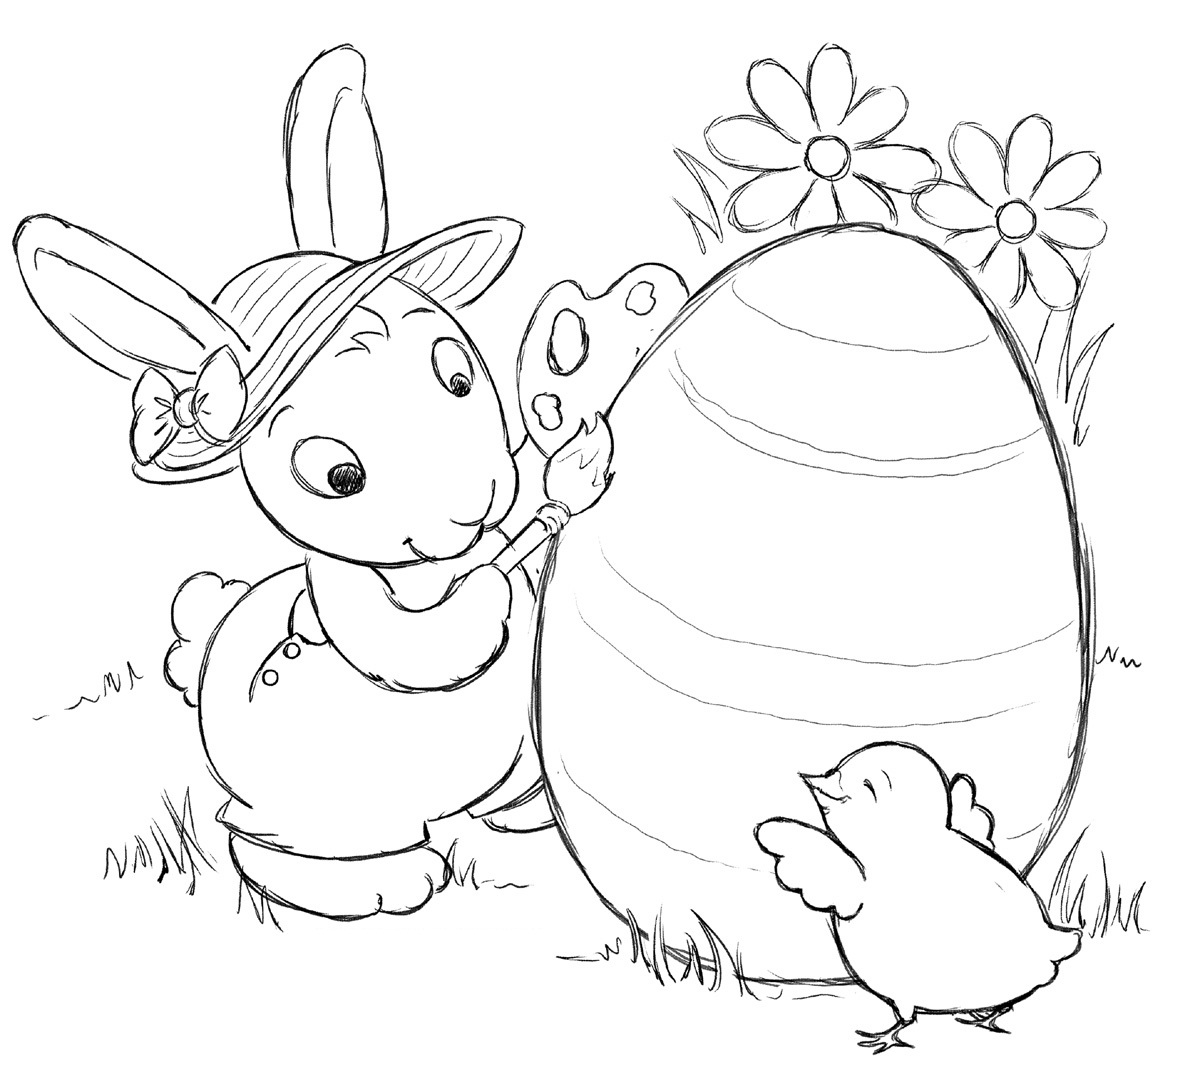 Coloring pages printable bunny - Coloring Pages Of Easter Bunny